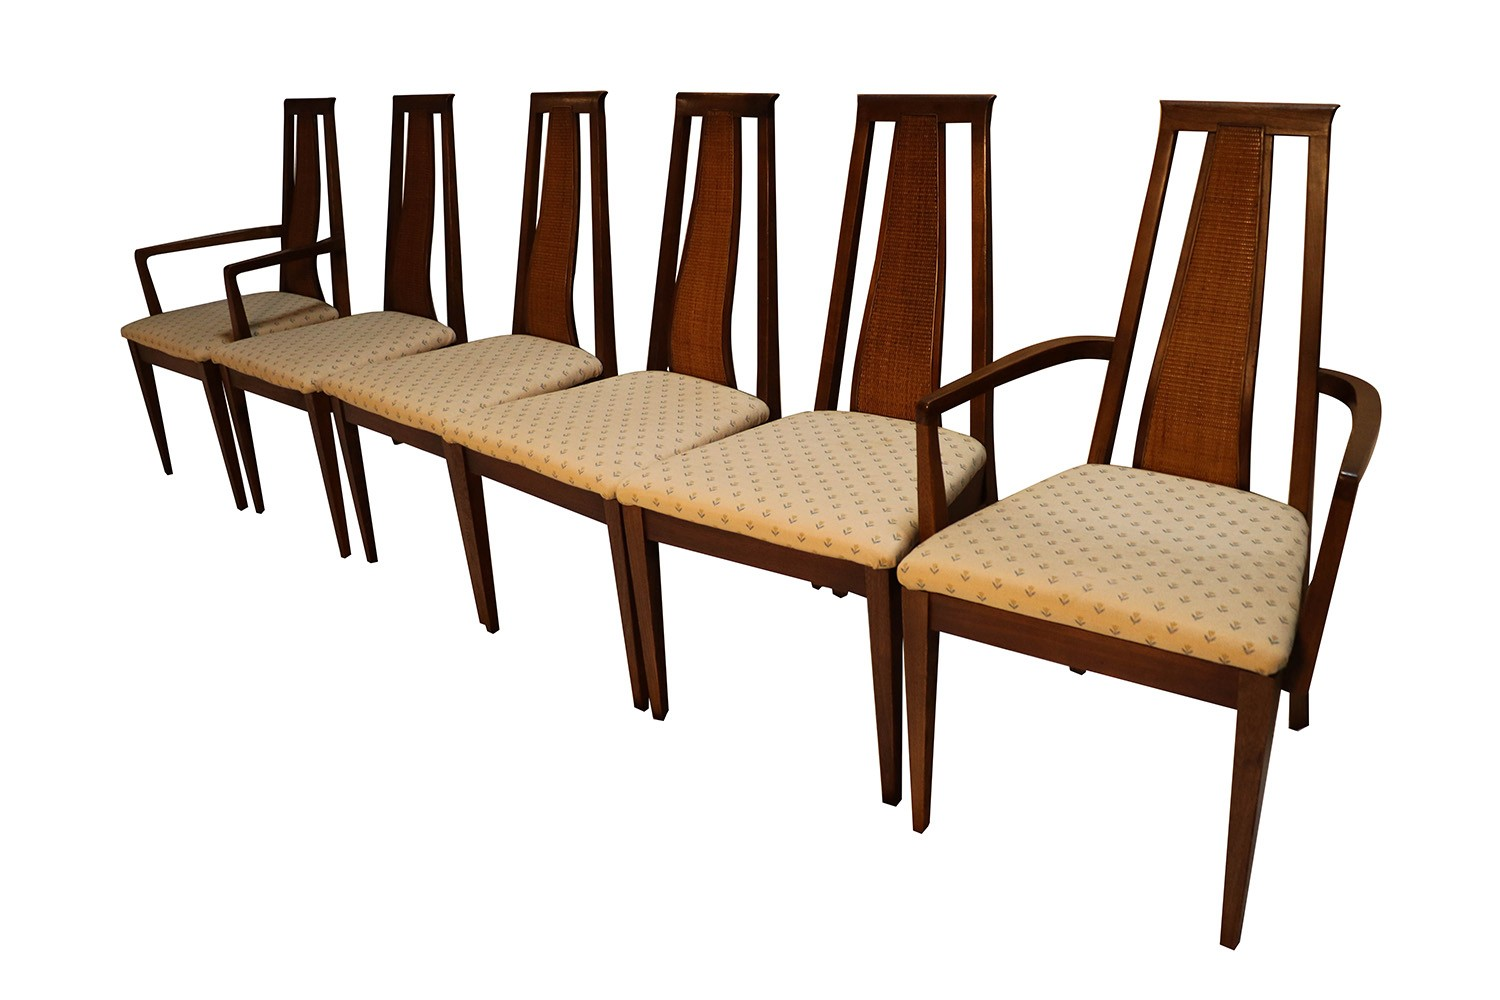 http://marykaysfurniture.com/wp-content/uploads/2018/01/Mid-Century-Modern-Six-Walnut-Dining-Chairs-American-of-Martinsville-1.jpg